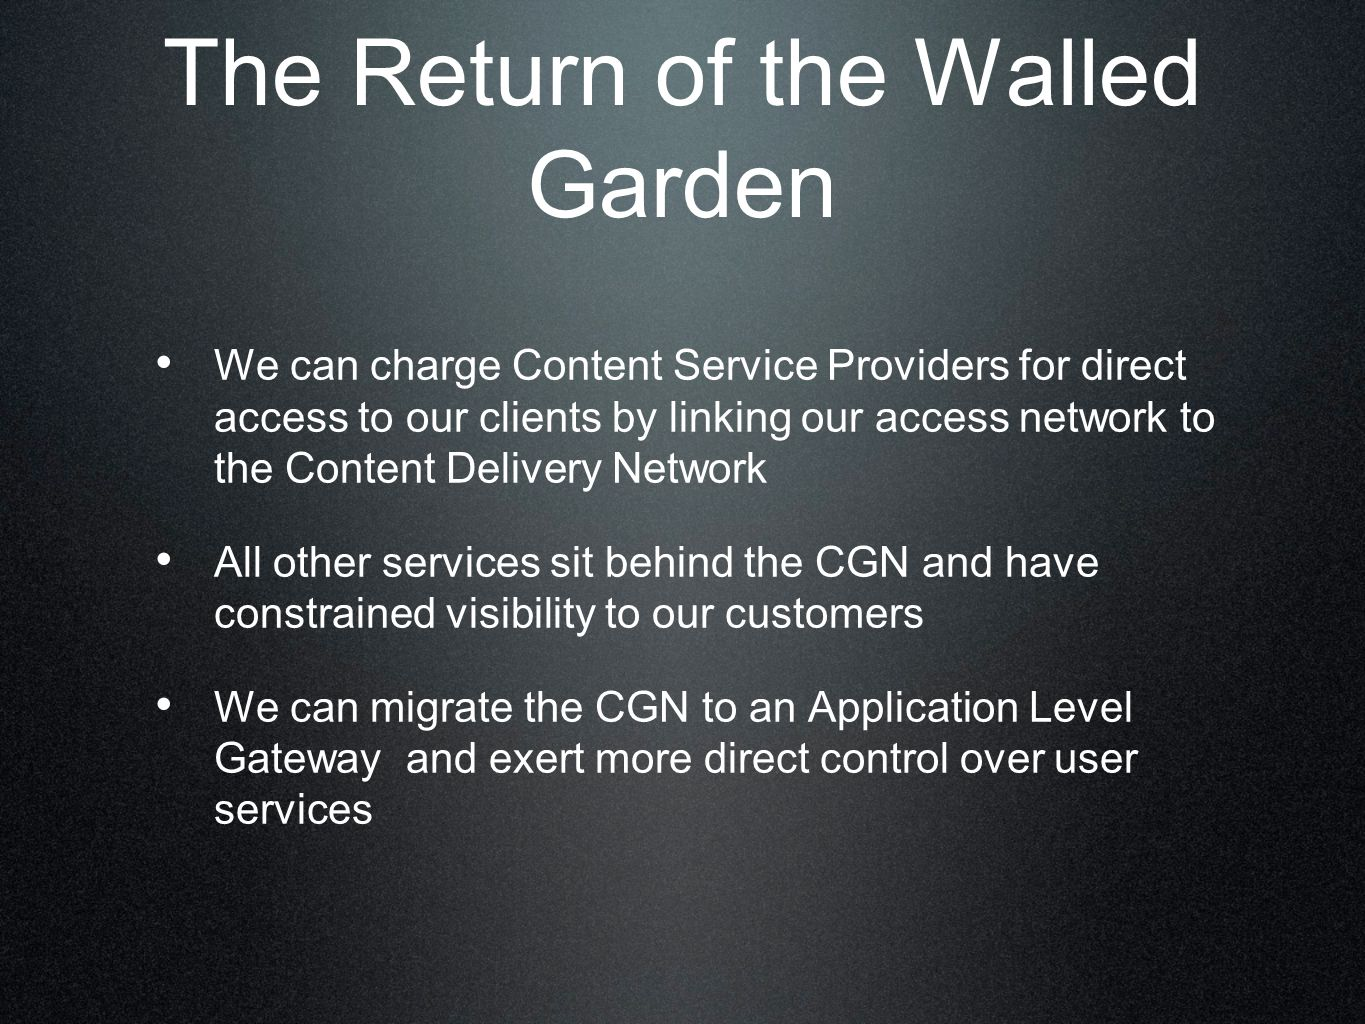 The Return of the Walled Garden We can charge Content Service Providers for direct access to our clients by linking our access network to the Content Delivery Network All other services sit behind the CGN and have constrained visibility to our customers We can migrate the CGN to an Application Level Gateway and exert more direct control over user services